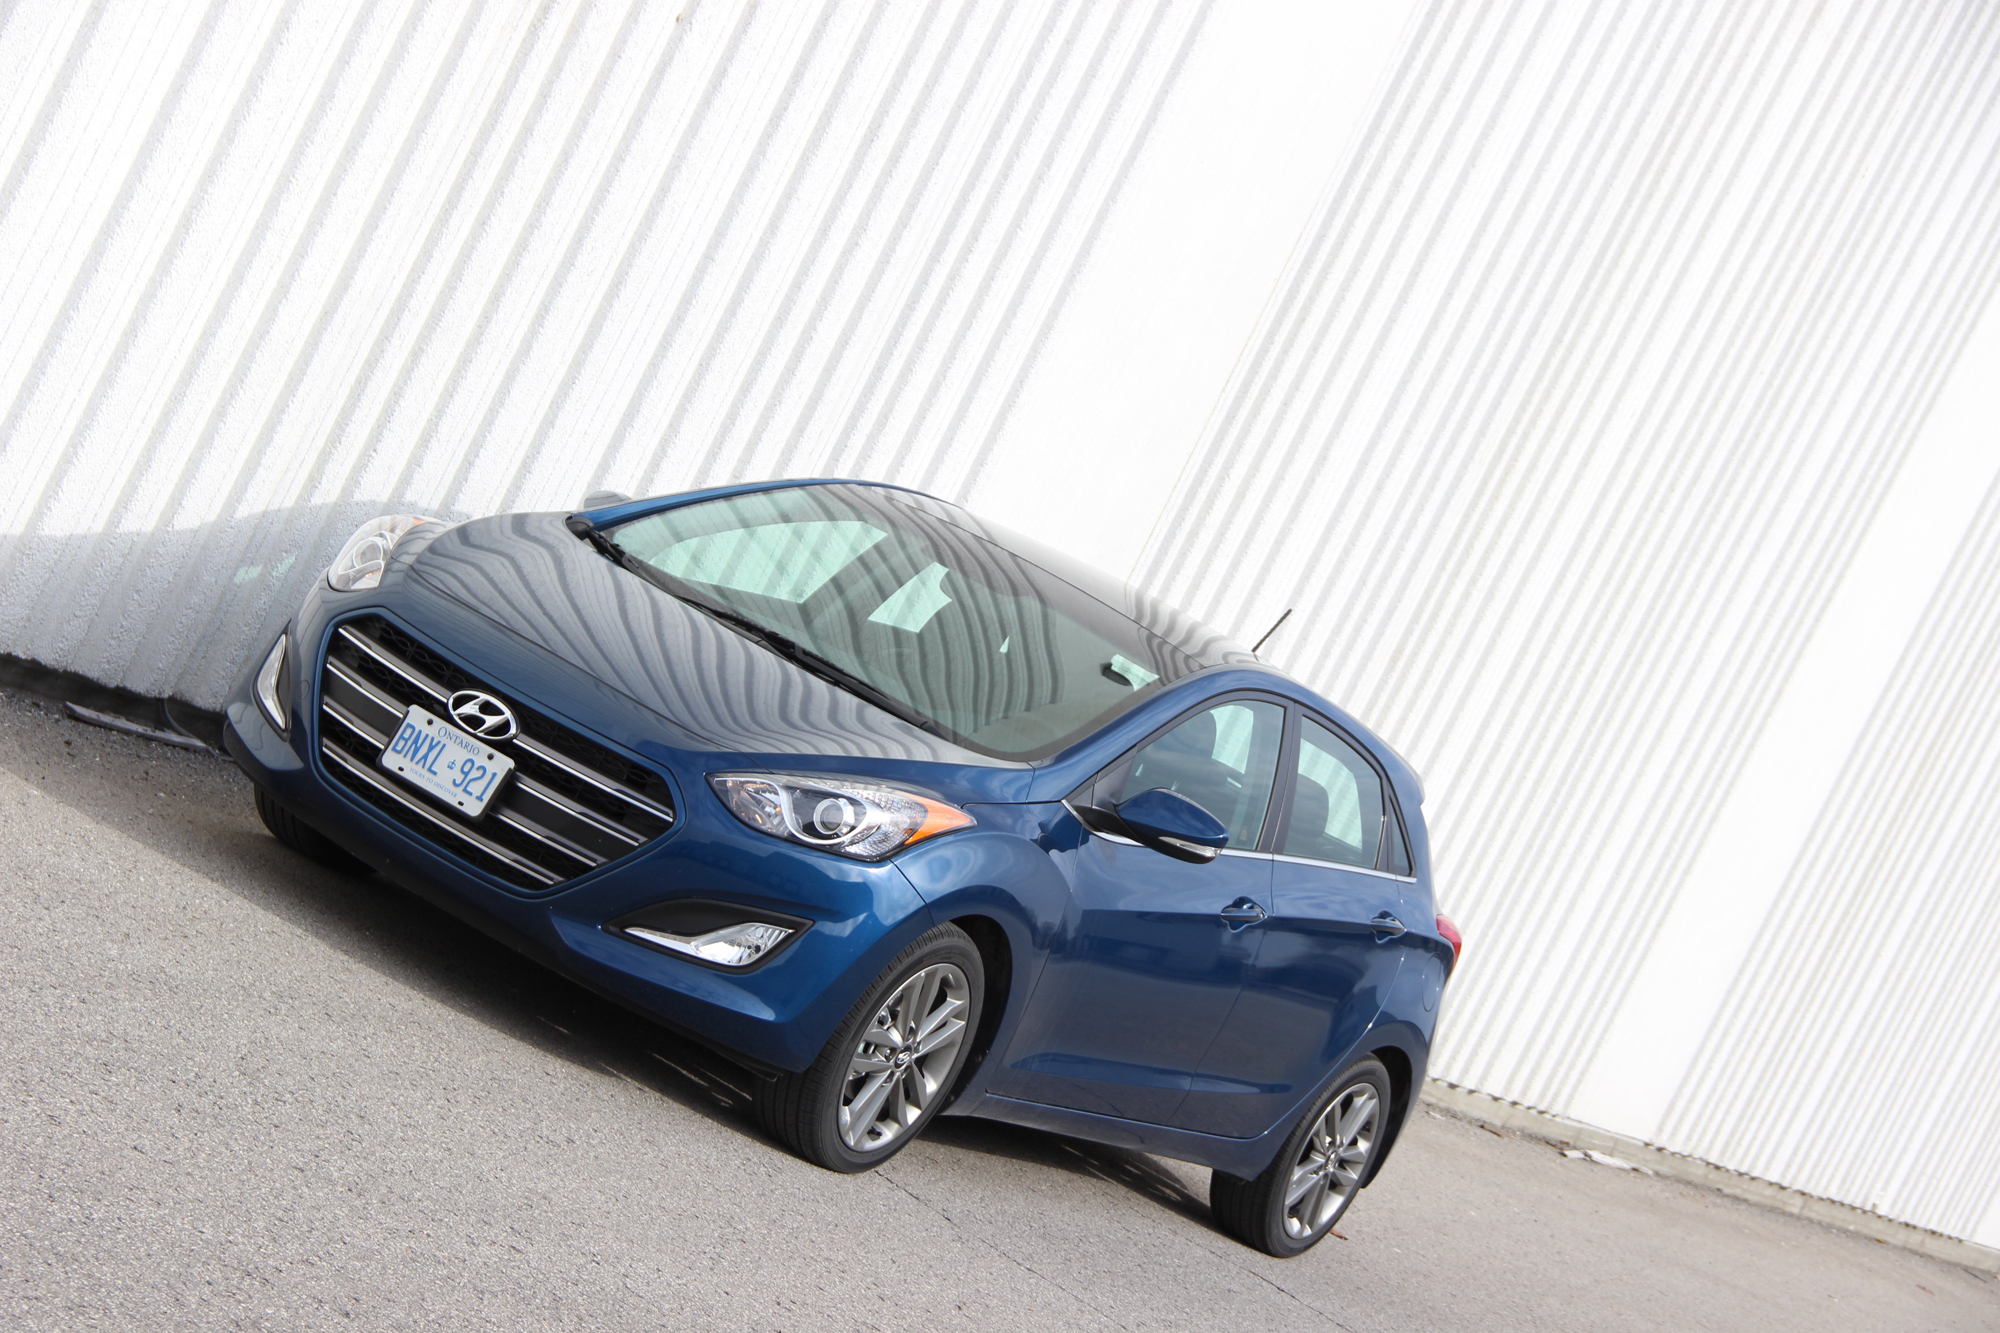 haims gt detail at hyundai elantra used motors hatchback automatic